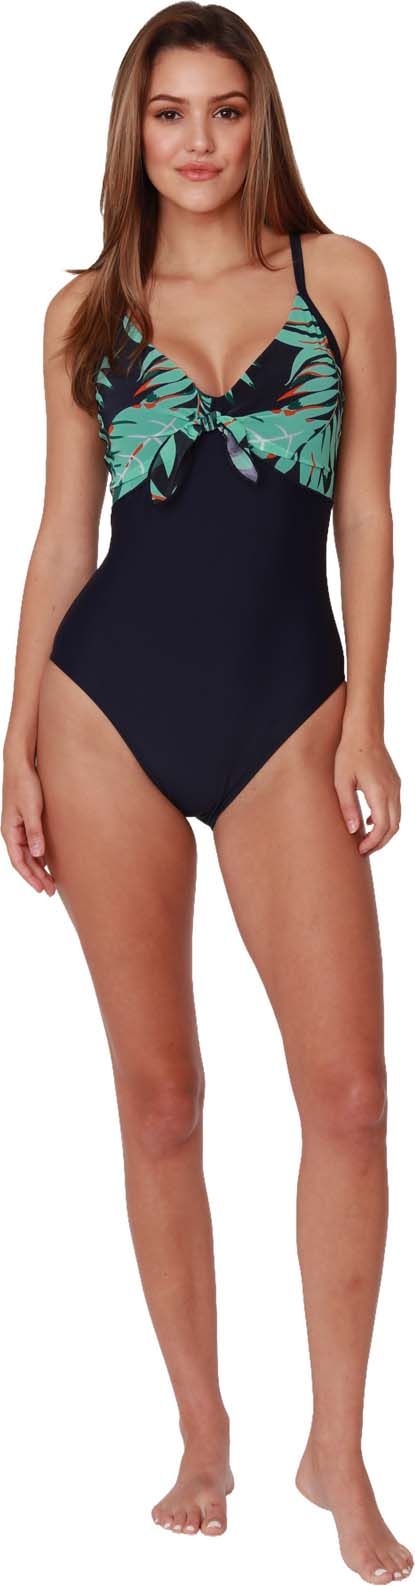 Your Best Look 1 PC Swimsuit